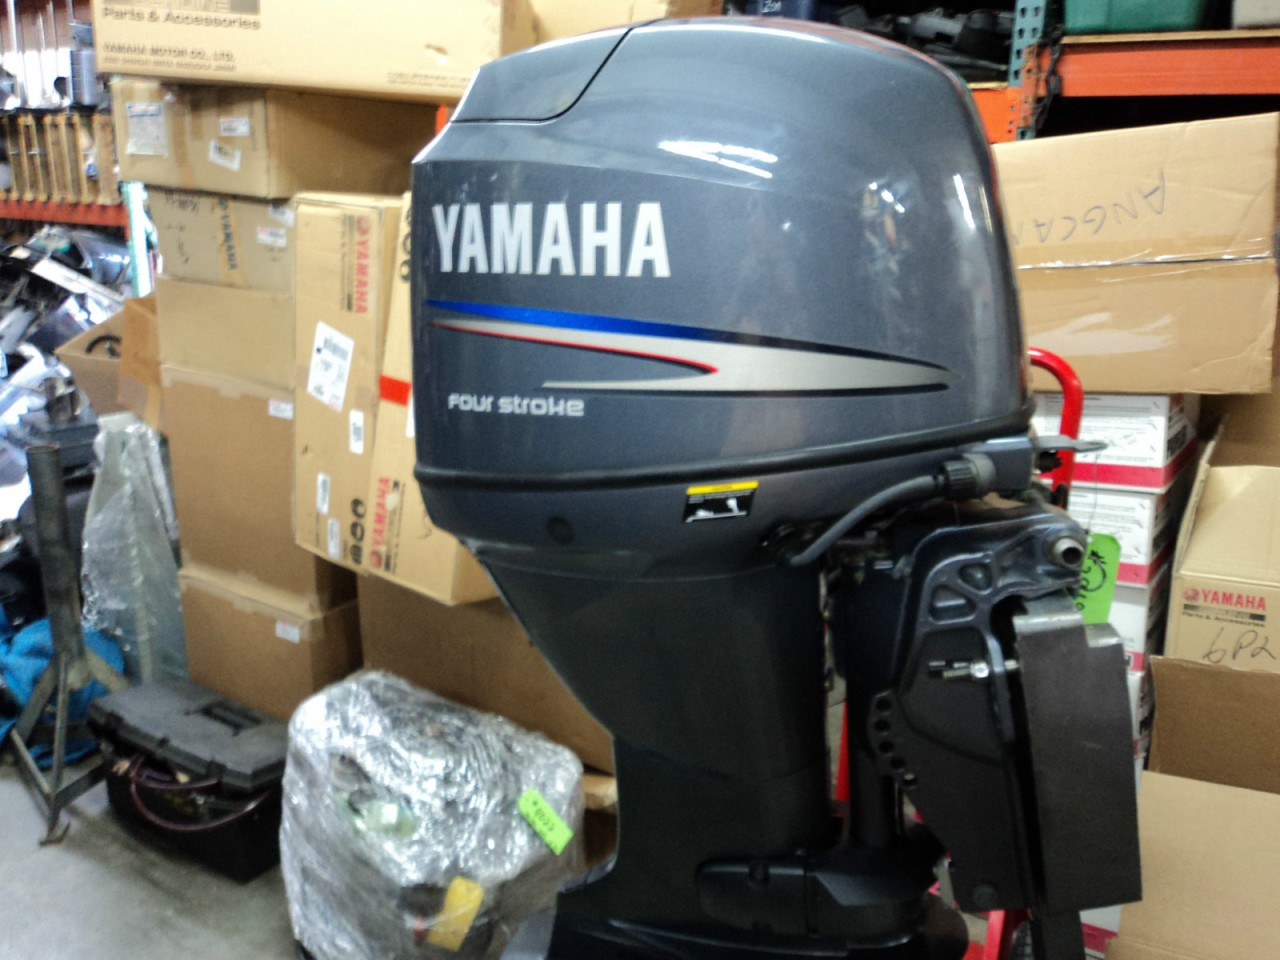 2007 YAMAHA T60HP FOUR STROKE HIGH THRUST OUTBOARD MOTOR